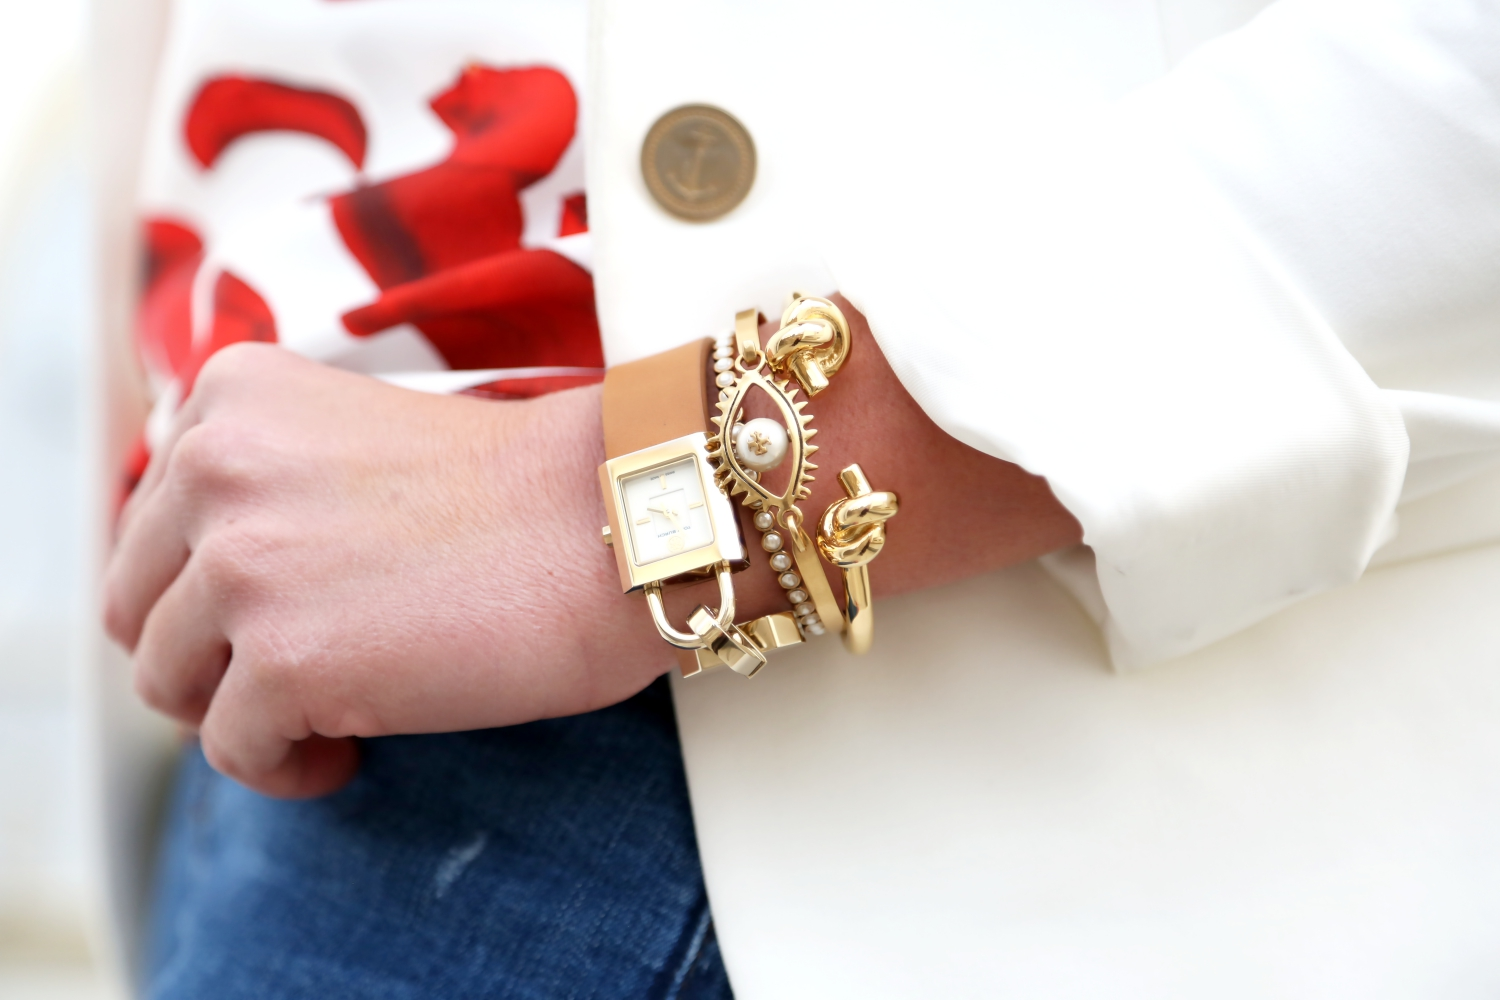 outfit-details-tory-burch-watch-marcjacobs-bracelet